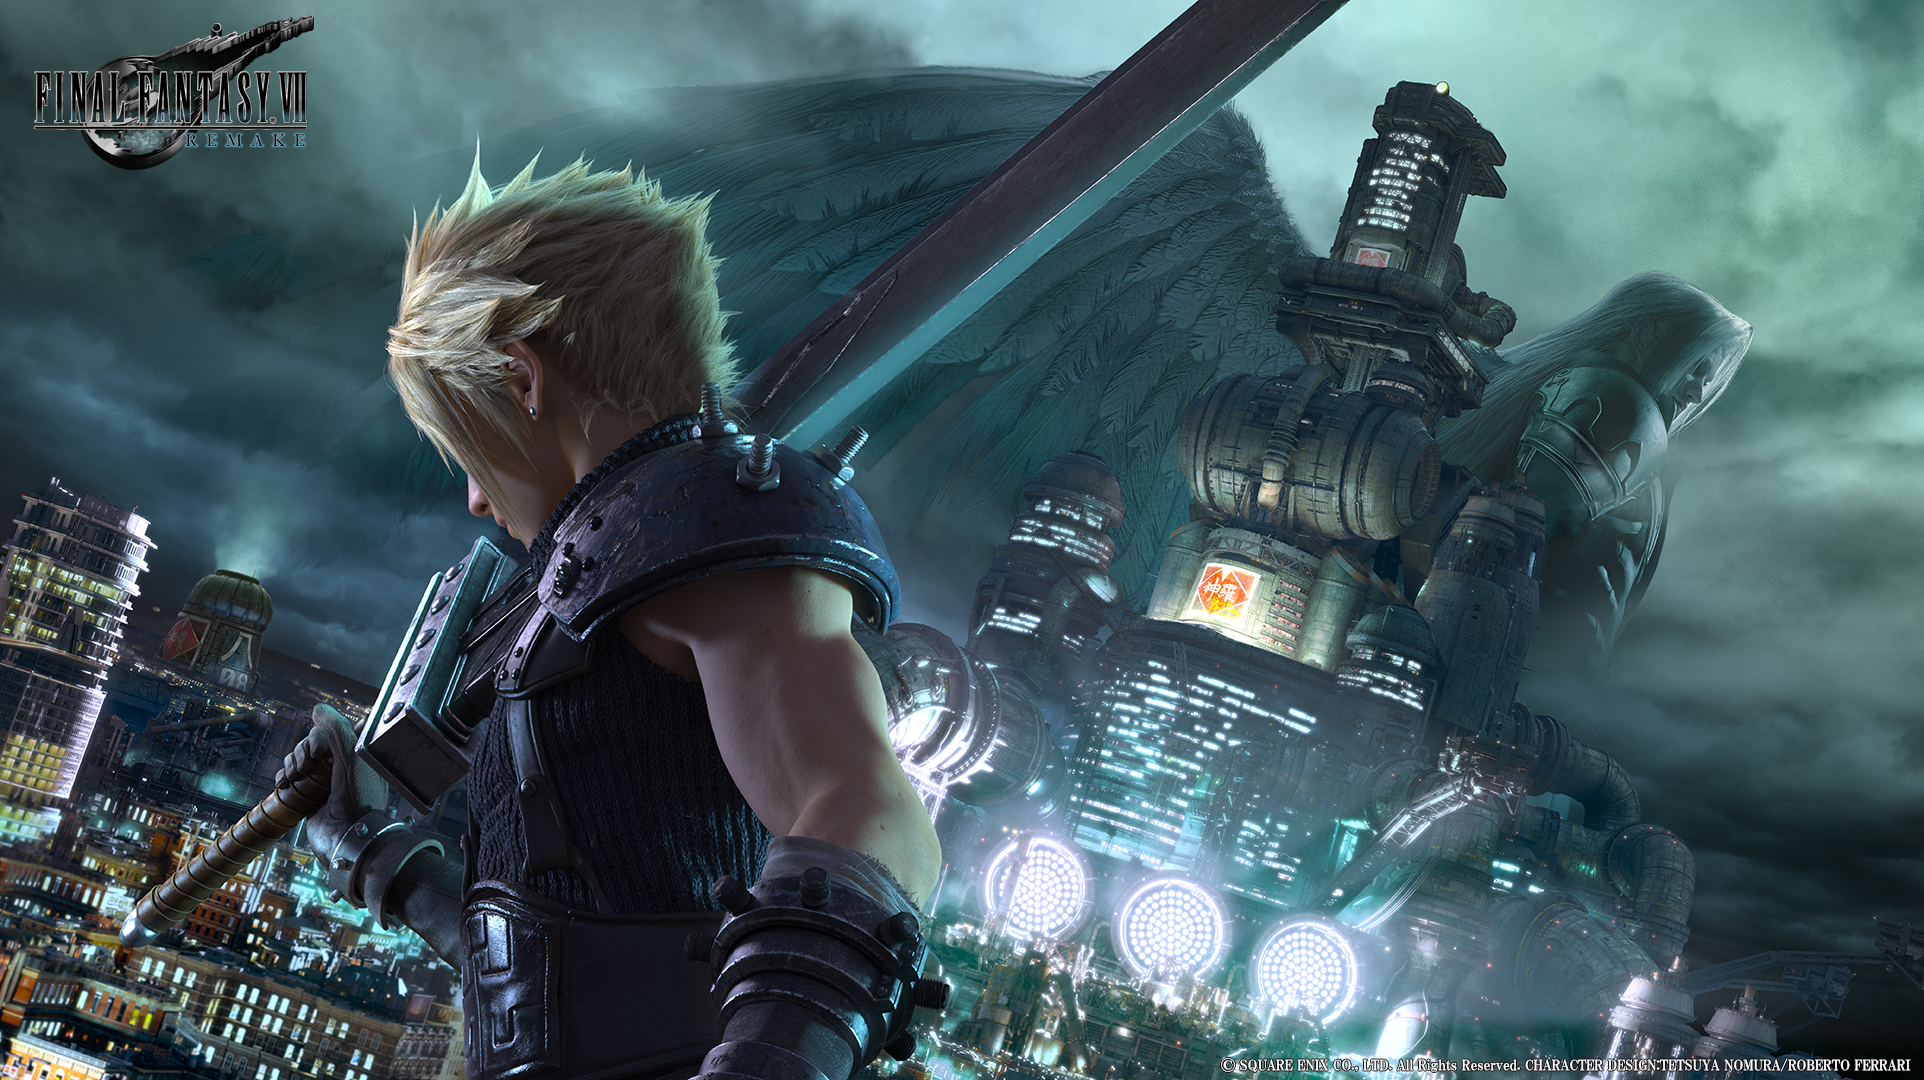 The Final Fantasy VII Remake Likely Won't Release This Year